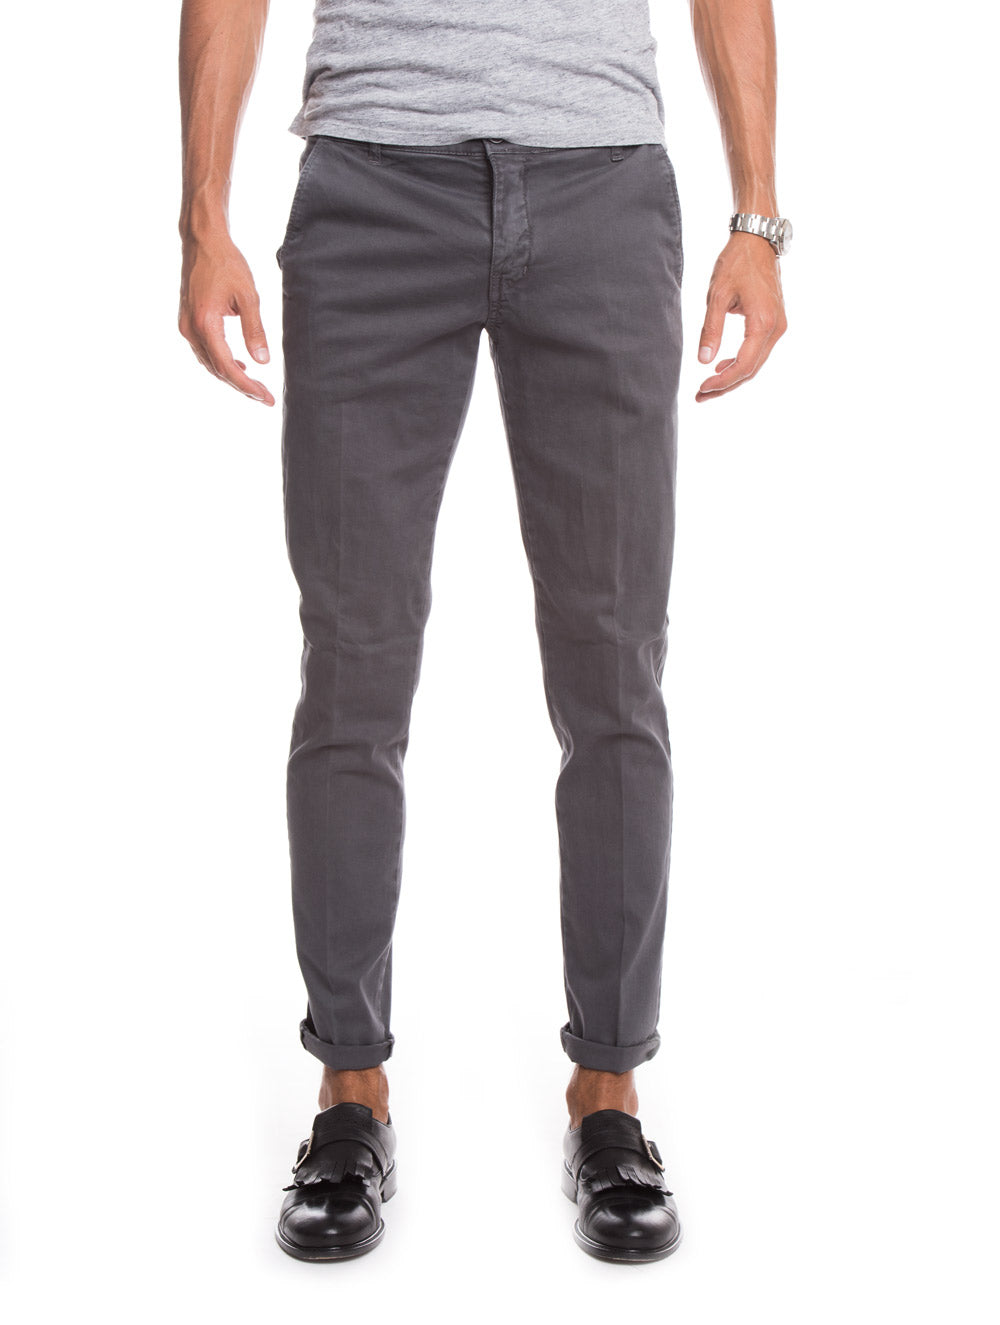 MEN'S CLOTHING | GREY BASIC CASUAL PANTS | CHINO TROUSERS | NOHOW